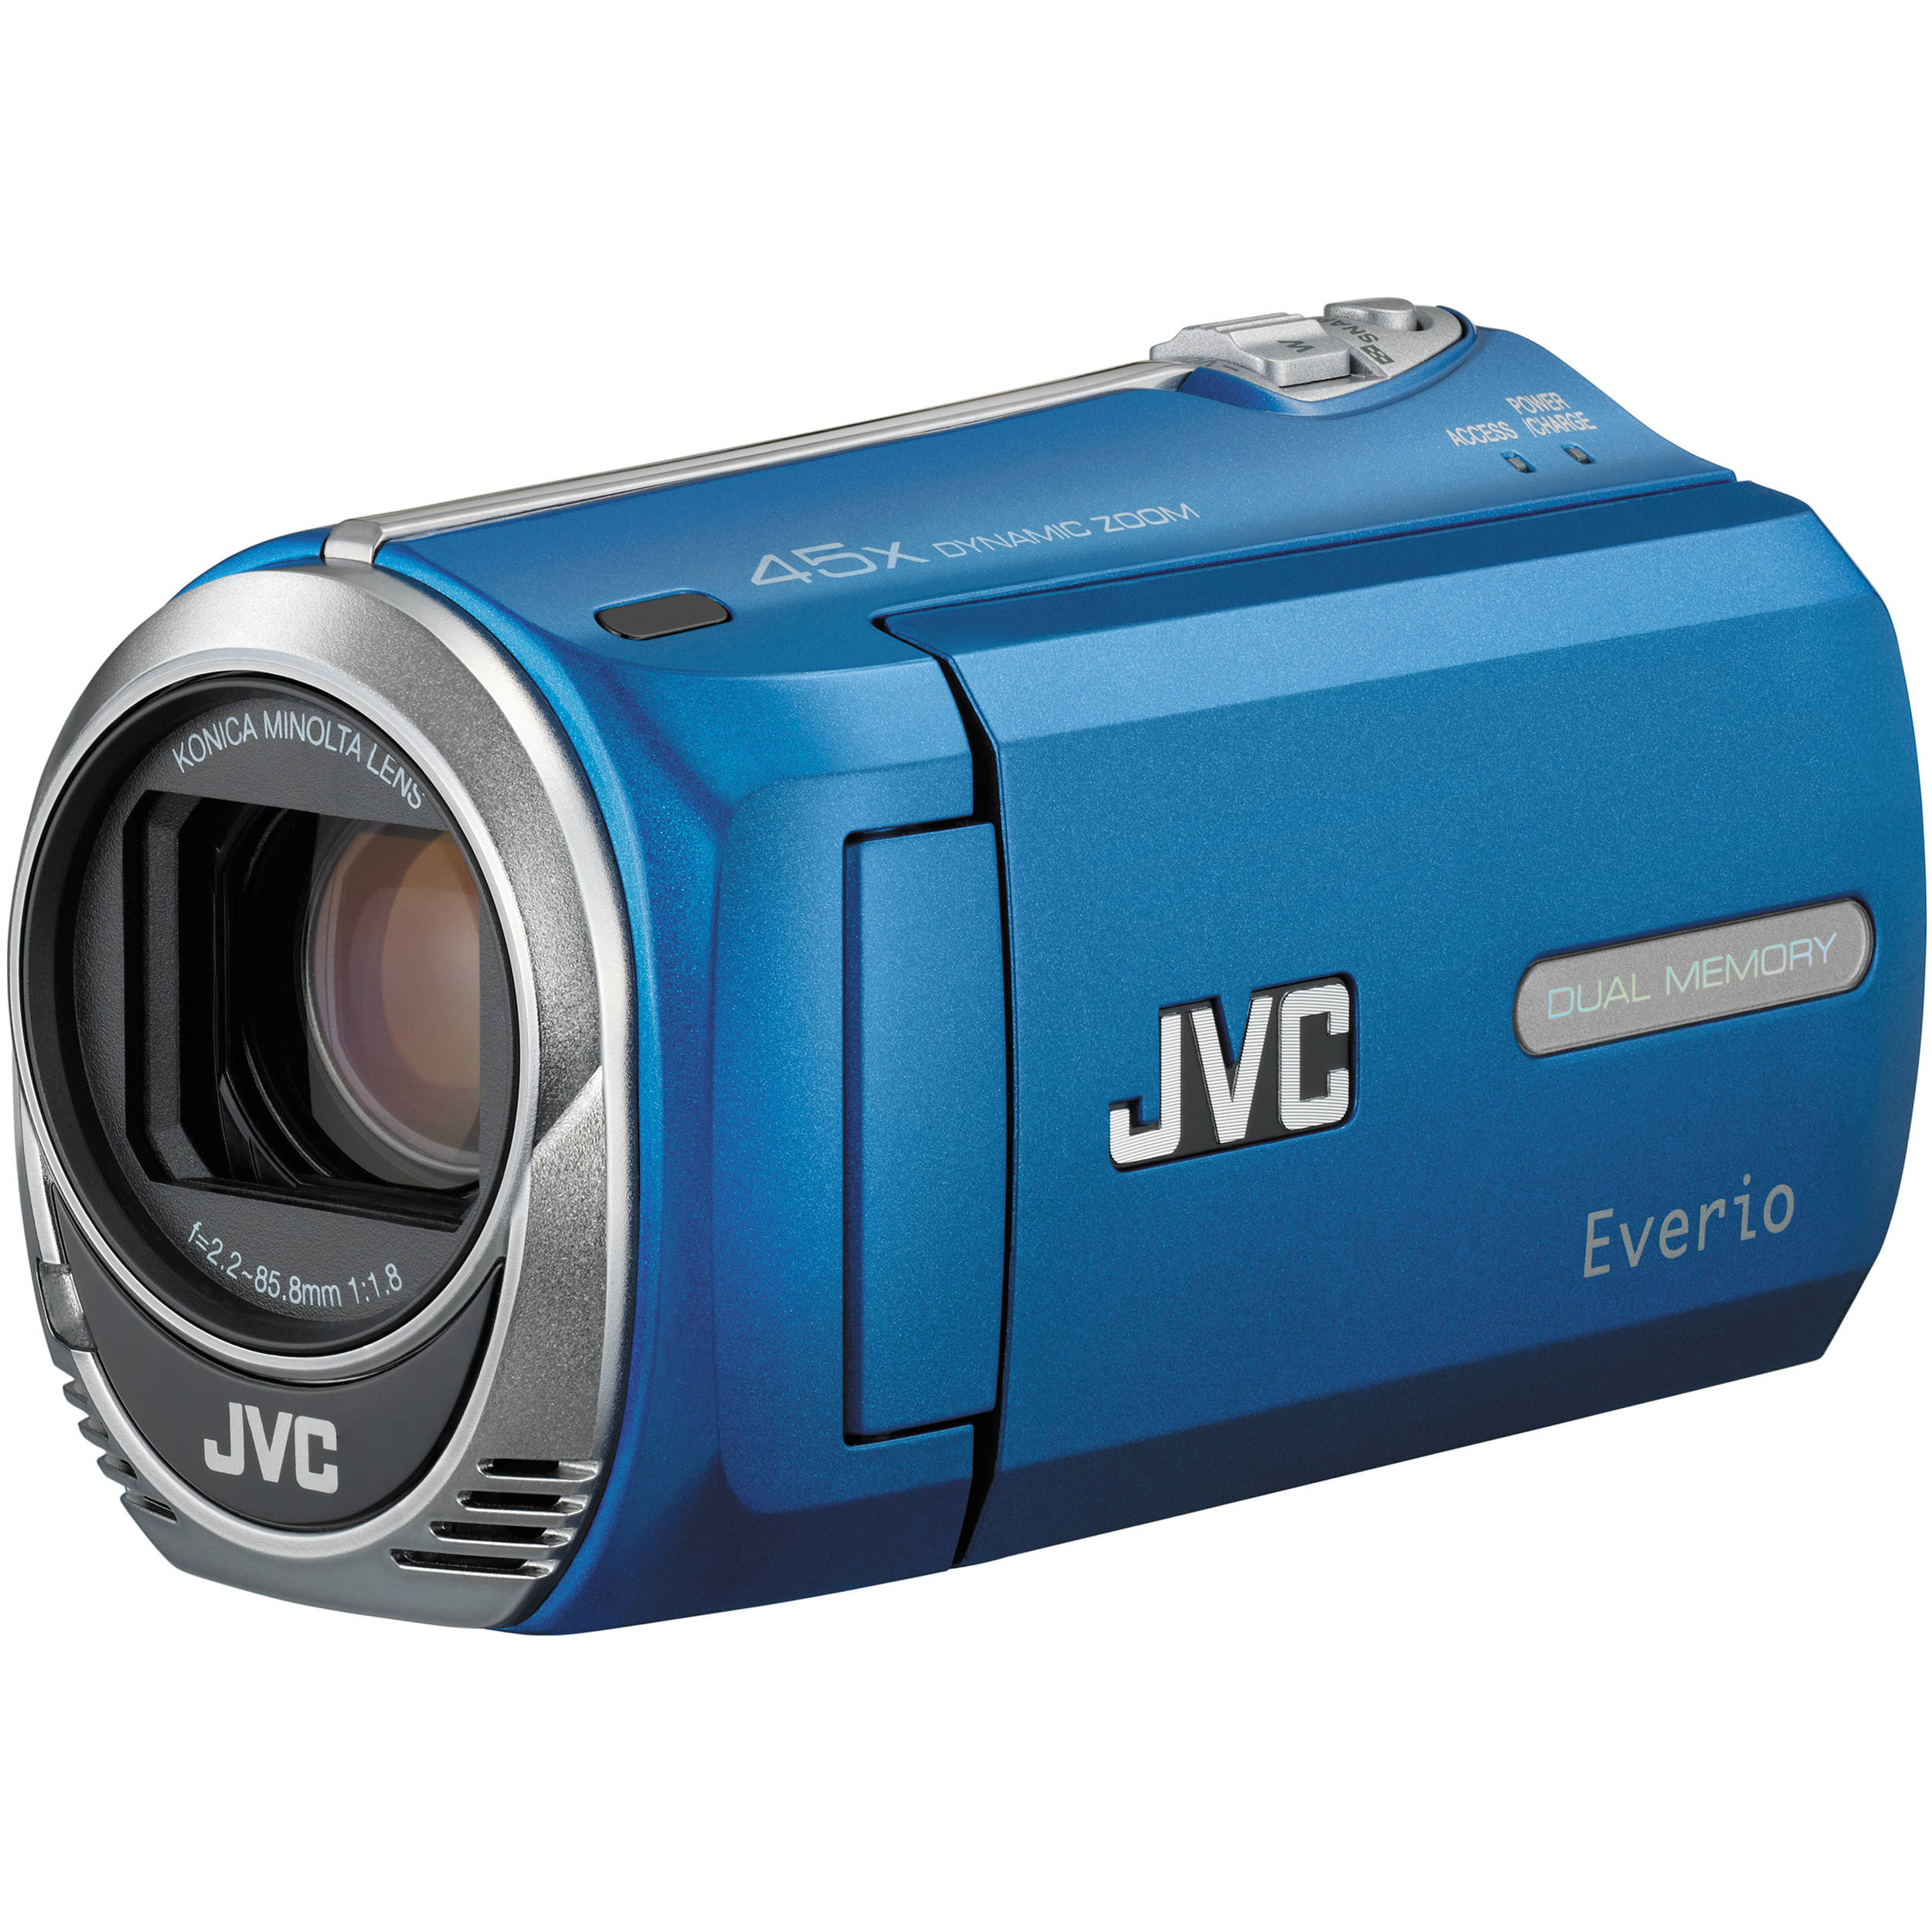 jvc gz ms230 everio s pal flash memory camera blue gzms230ae rh bhphotovideo com jvc everio 45x dynamic zoom manual filmadora jvc everio 45x manual